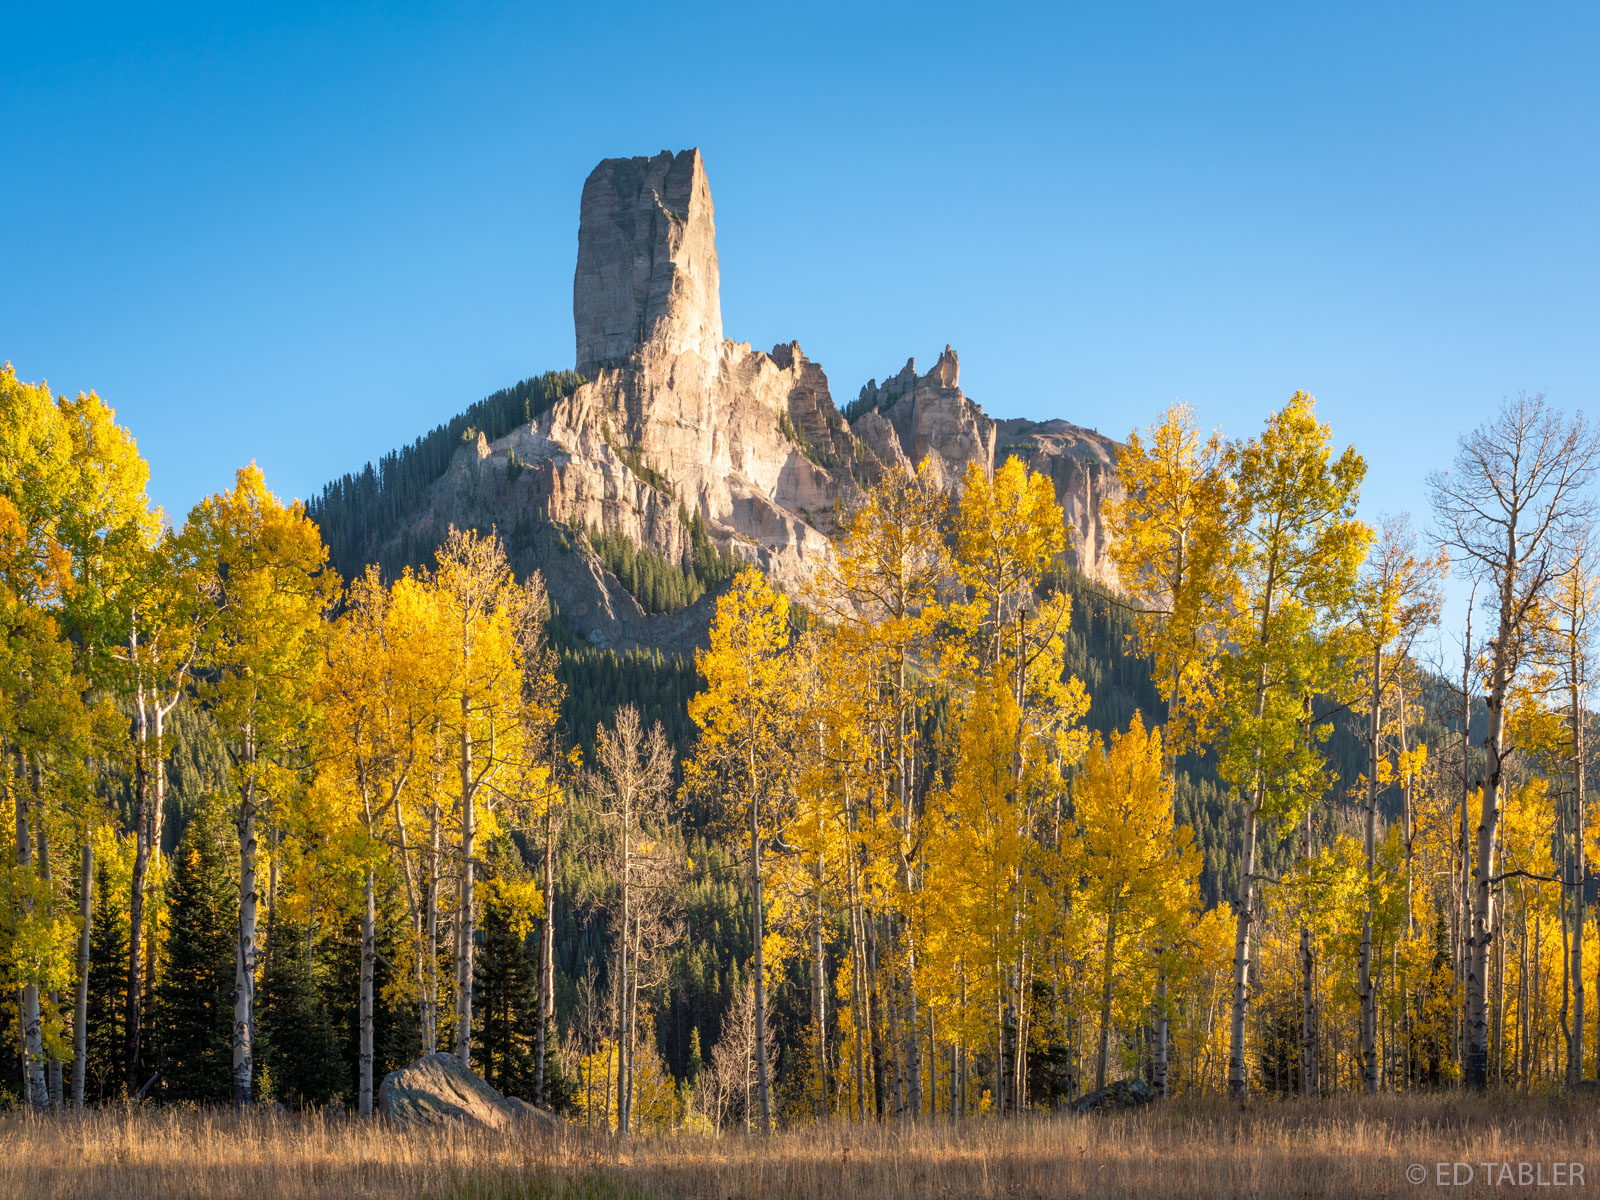 South of Owl Creek Pass in the Cimarron Range of Colorado's San Juan Mountains, this 11,781 ft peak and its environs served as...